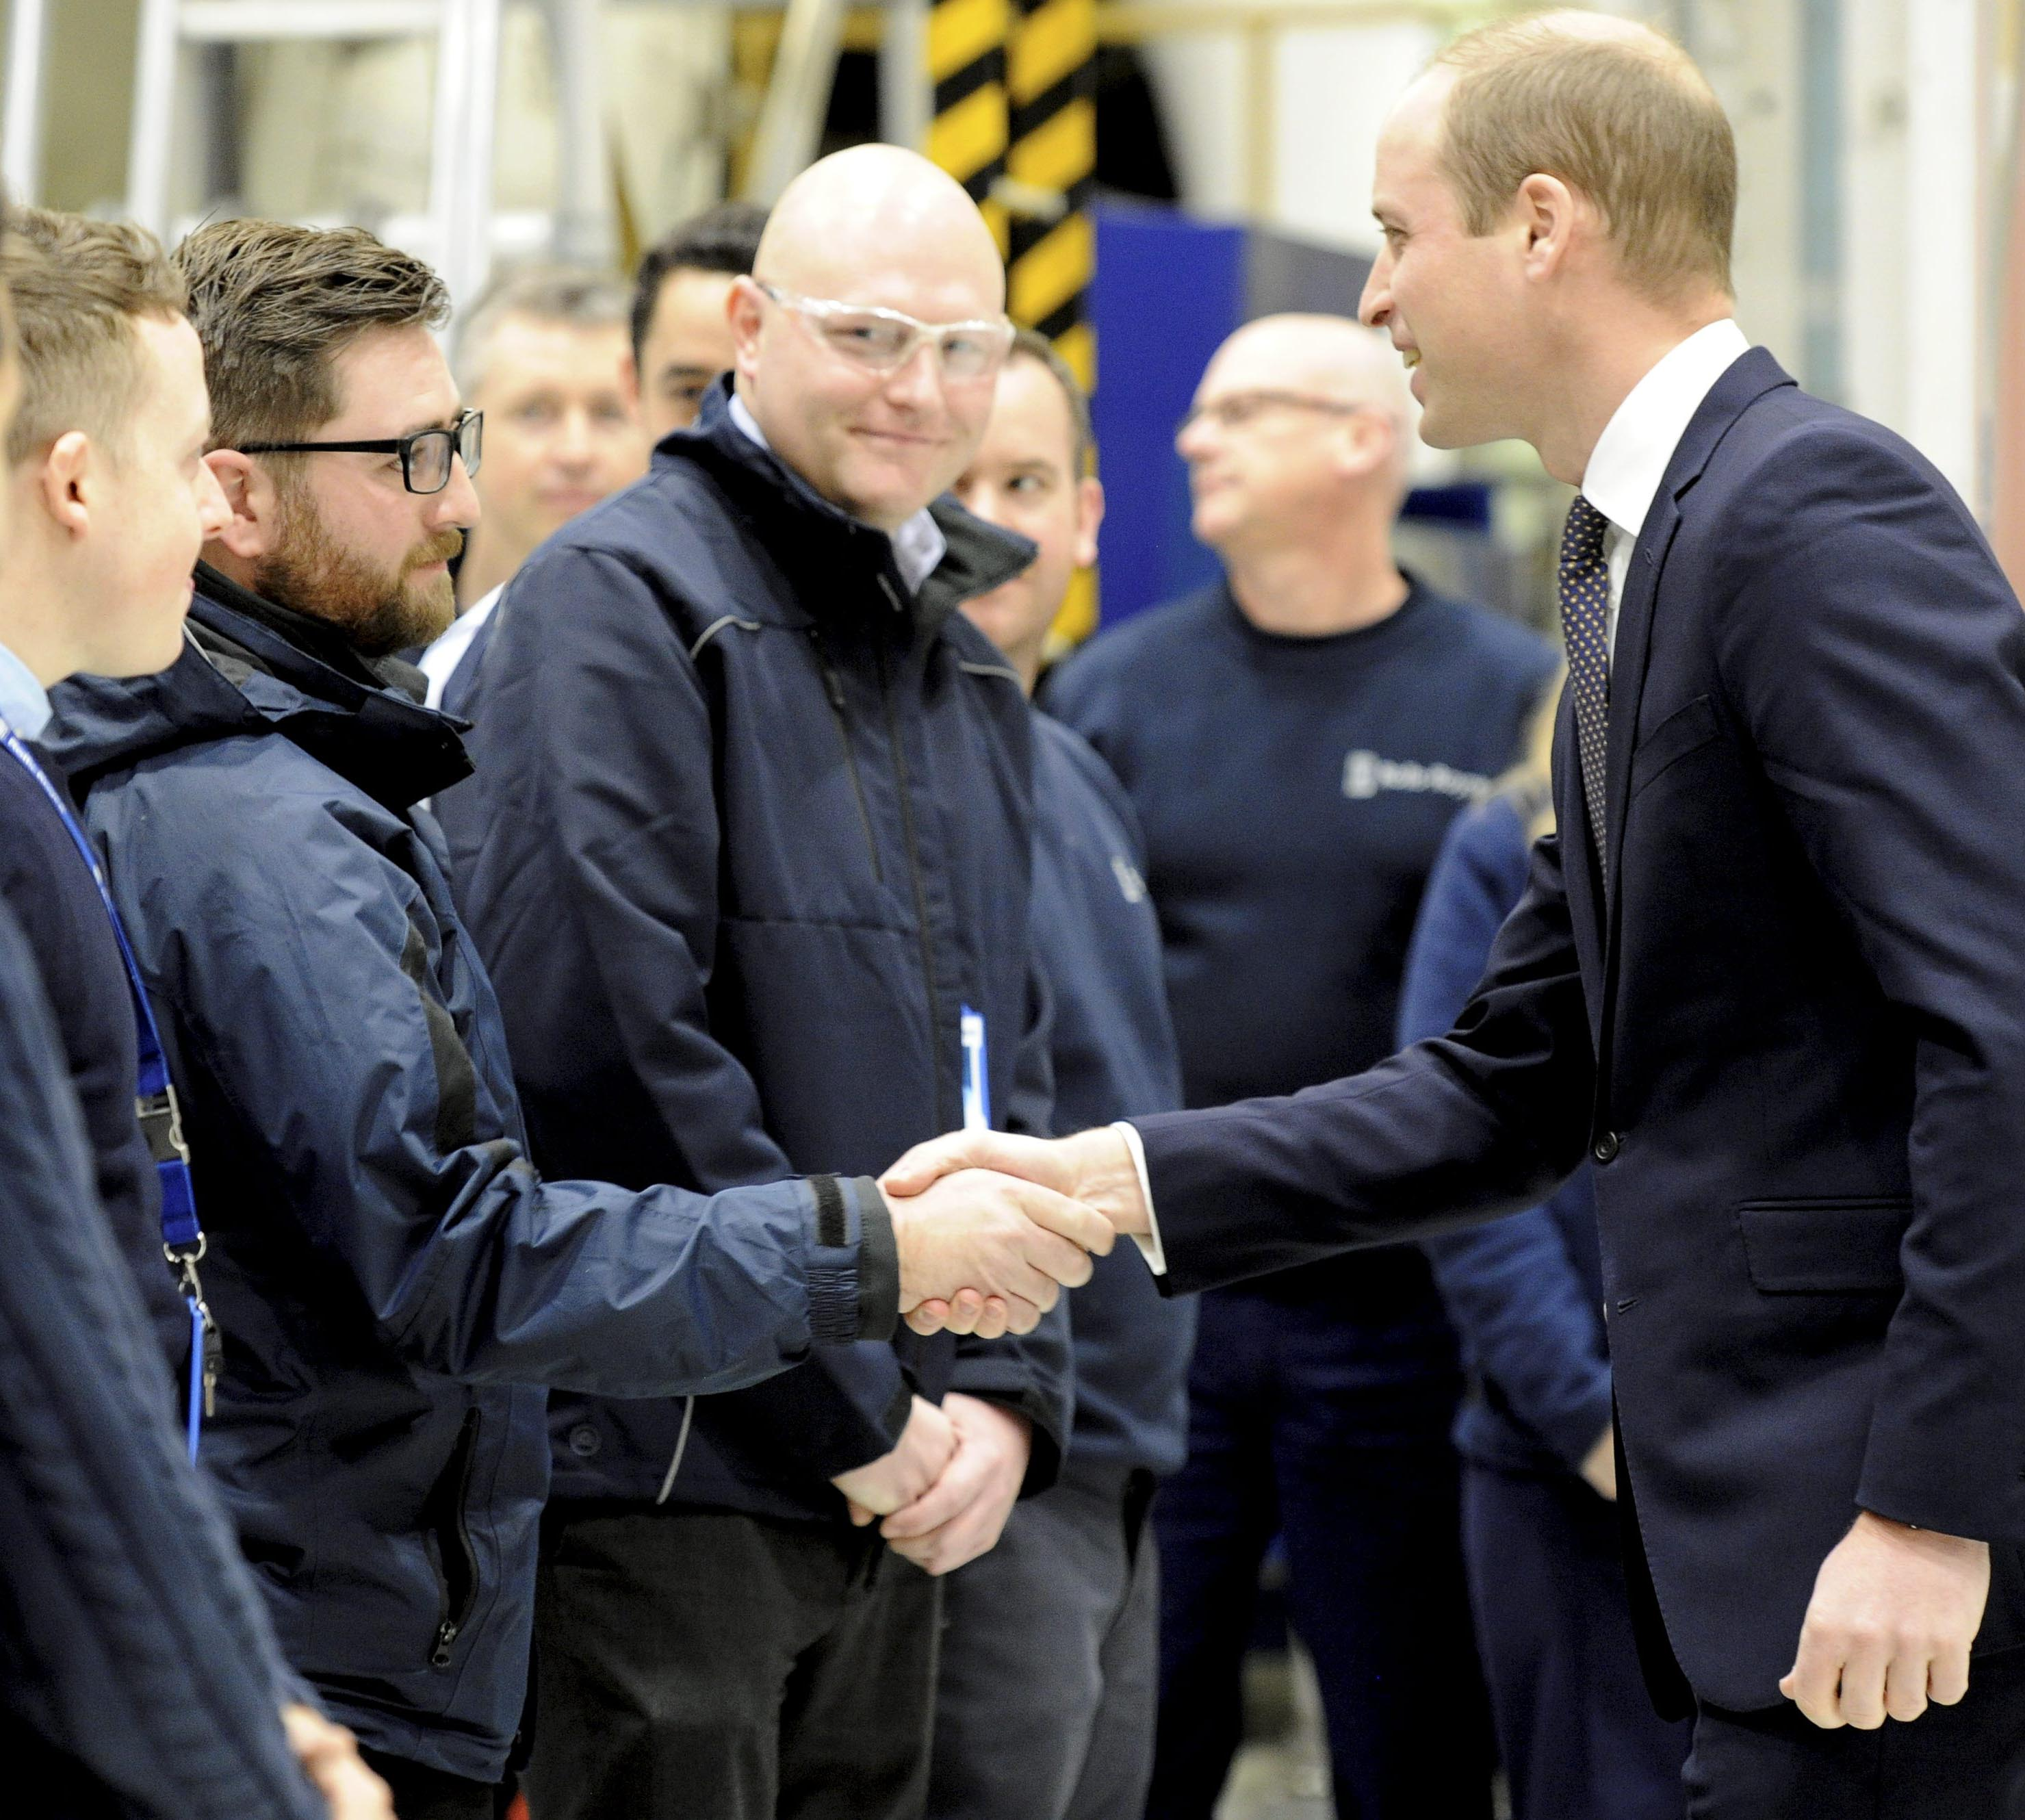 Picture: Victoria Wilcox ROYAL ROTA ARRANGEMENT SO PICTURES ARE AVAILABLE TO MEDIA  The Duke of Cambridge HRH Prince William visit to Rolls-Royce HQ in Wilmore Road, Derby  Employees eagerly await his arrival, then some even got to meet him in person too - at the Technology Centre here